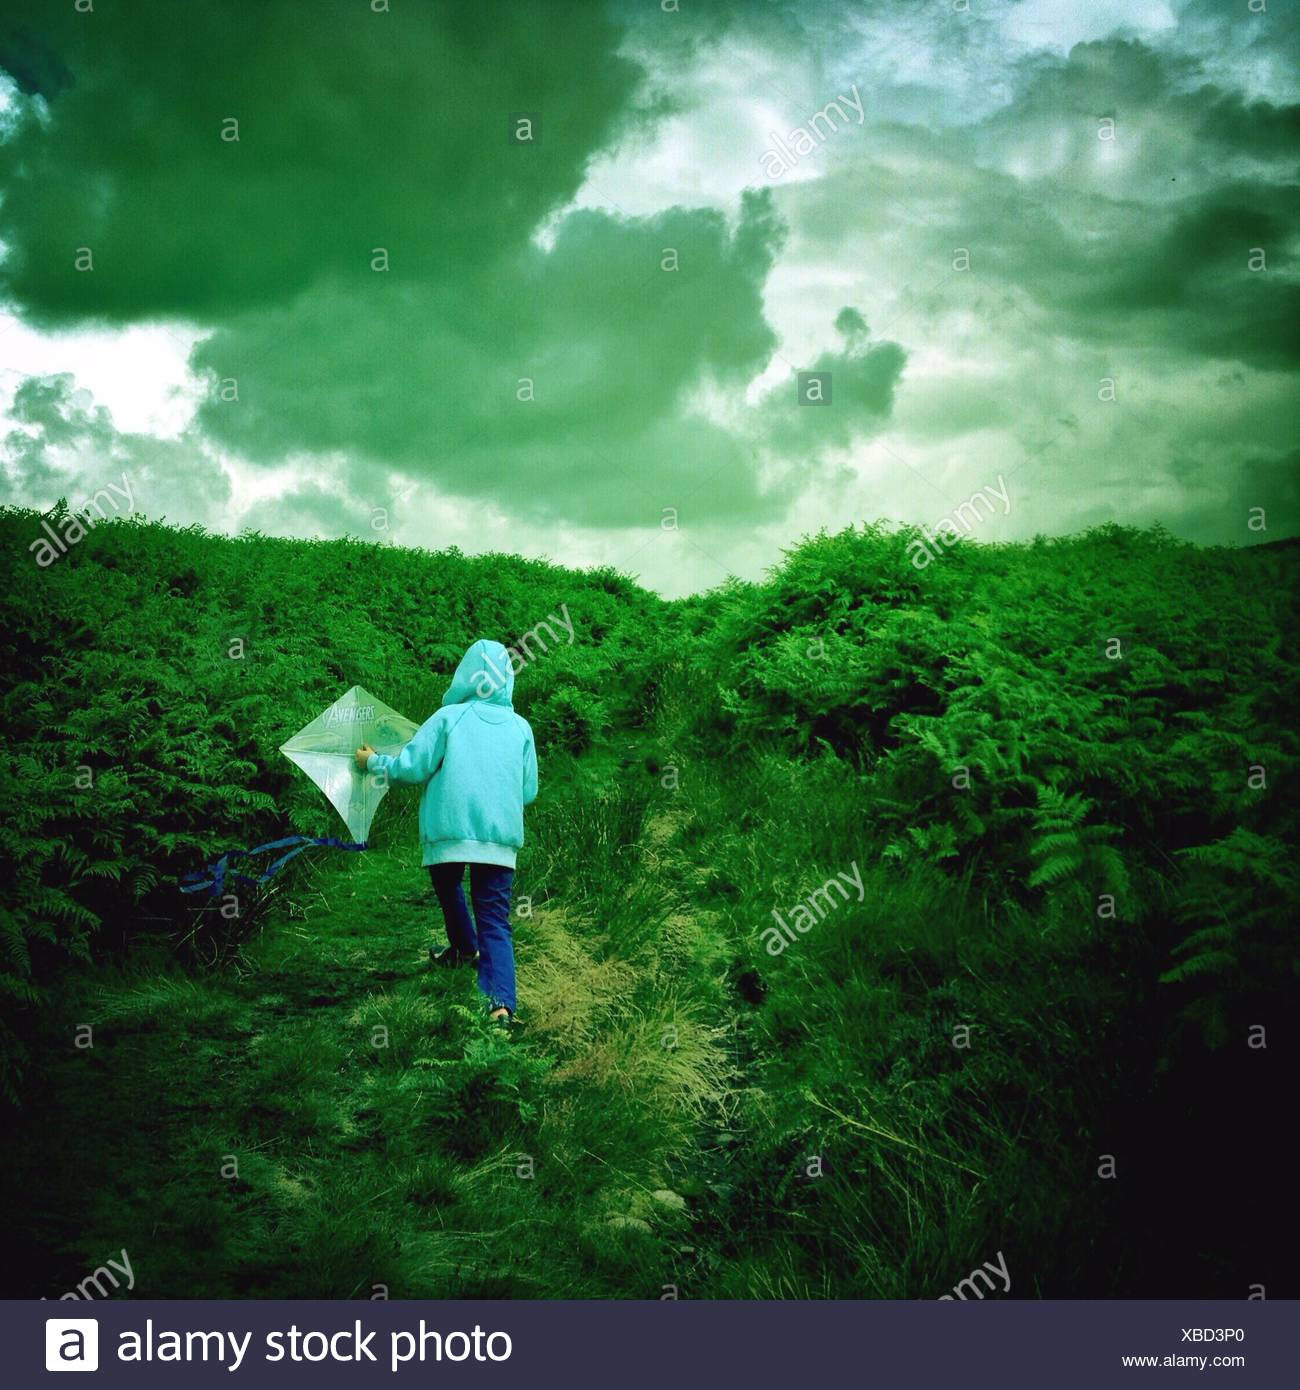 Rear View Of Boy In Hood With Kite Walking On Green Landscape Against Cloudy Sky - Stock Image